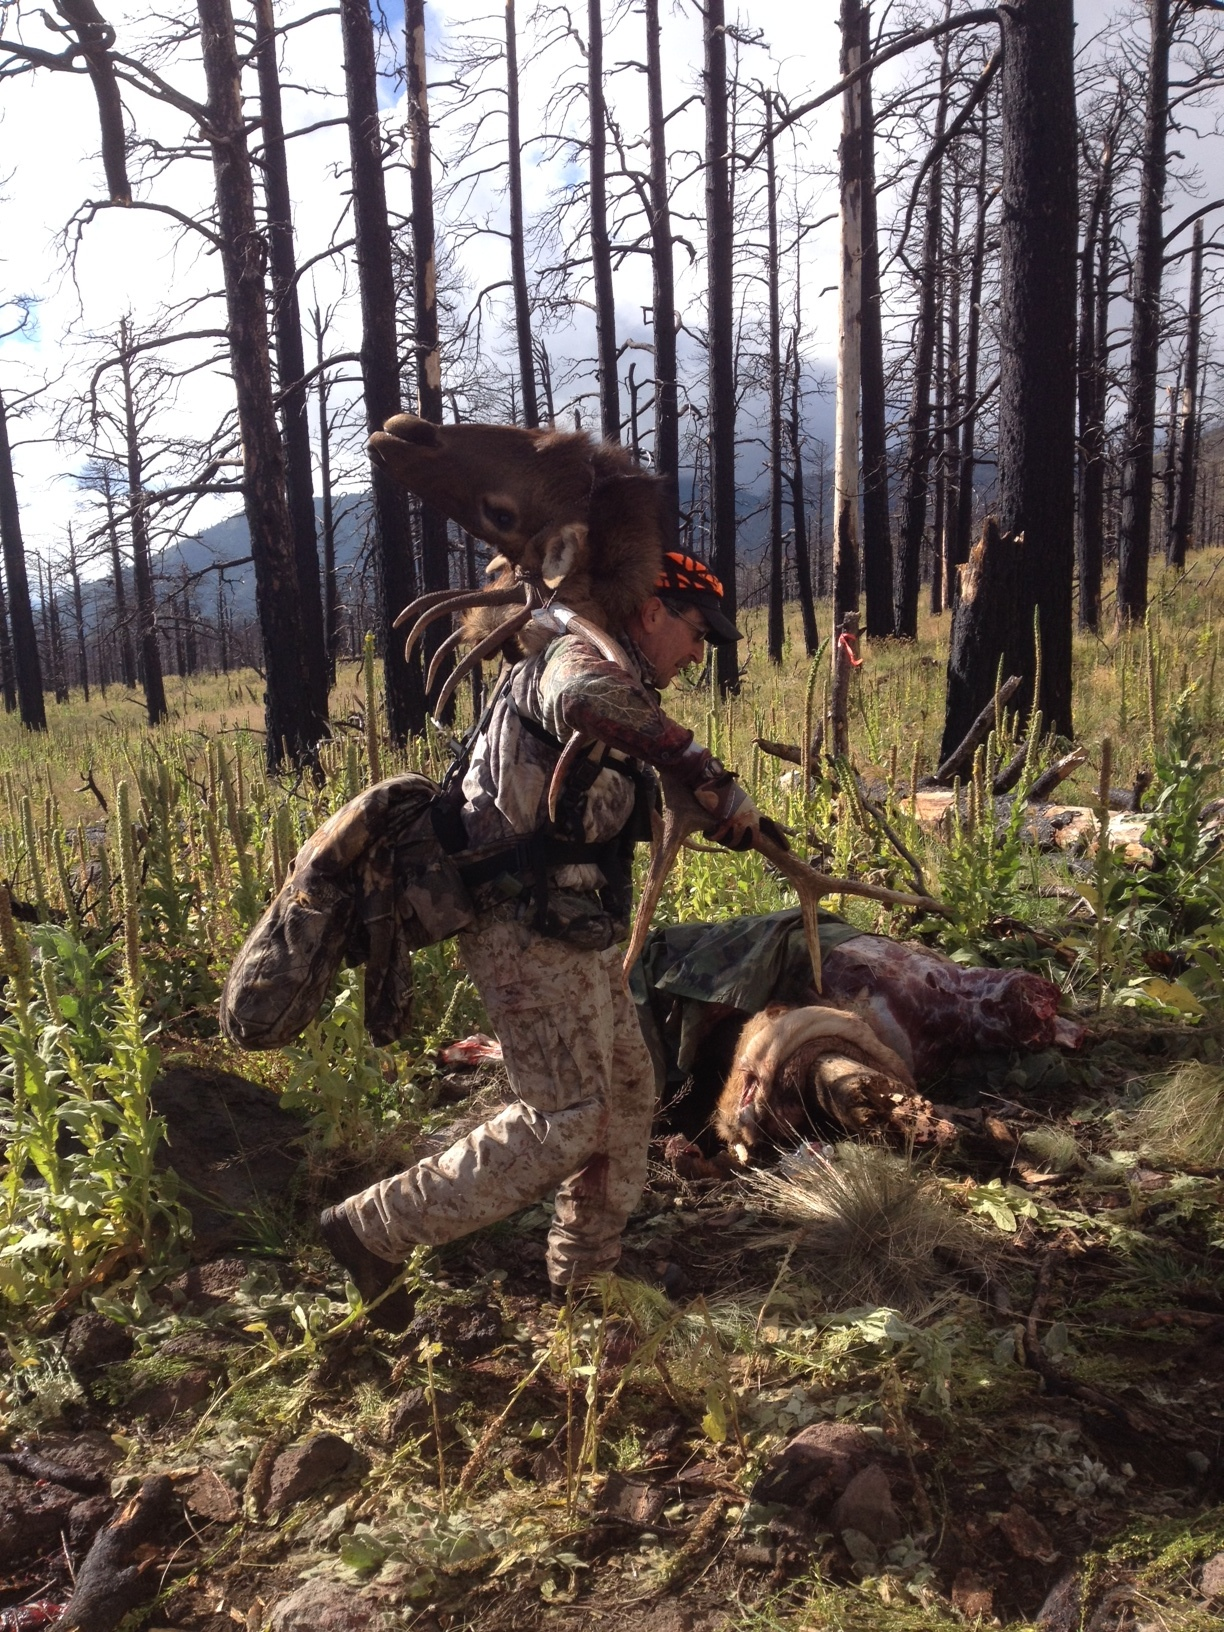 Another shot of Martin Anaya packing bull elk out of the Schultz Burn (2014), near the same location as 2006 photos.